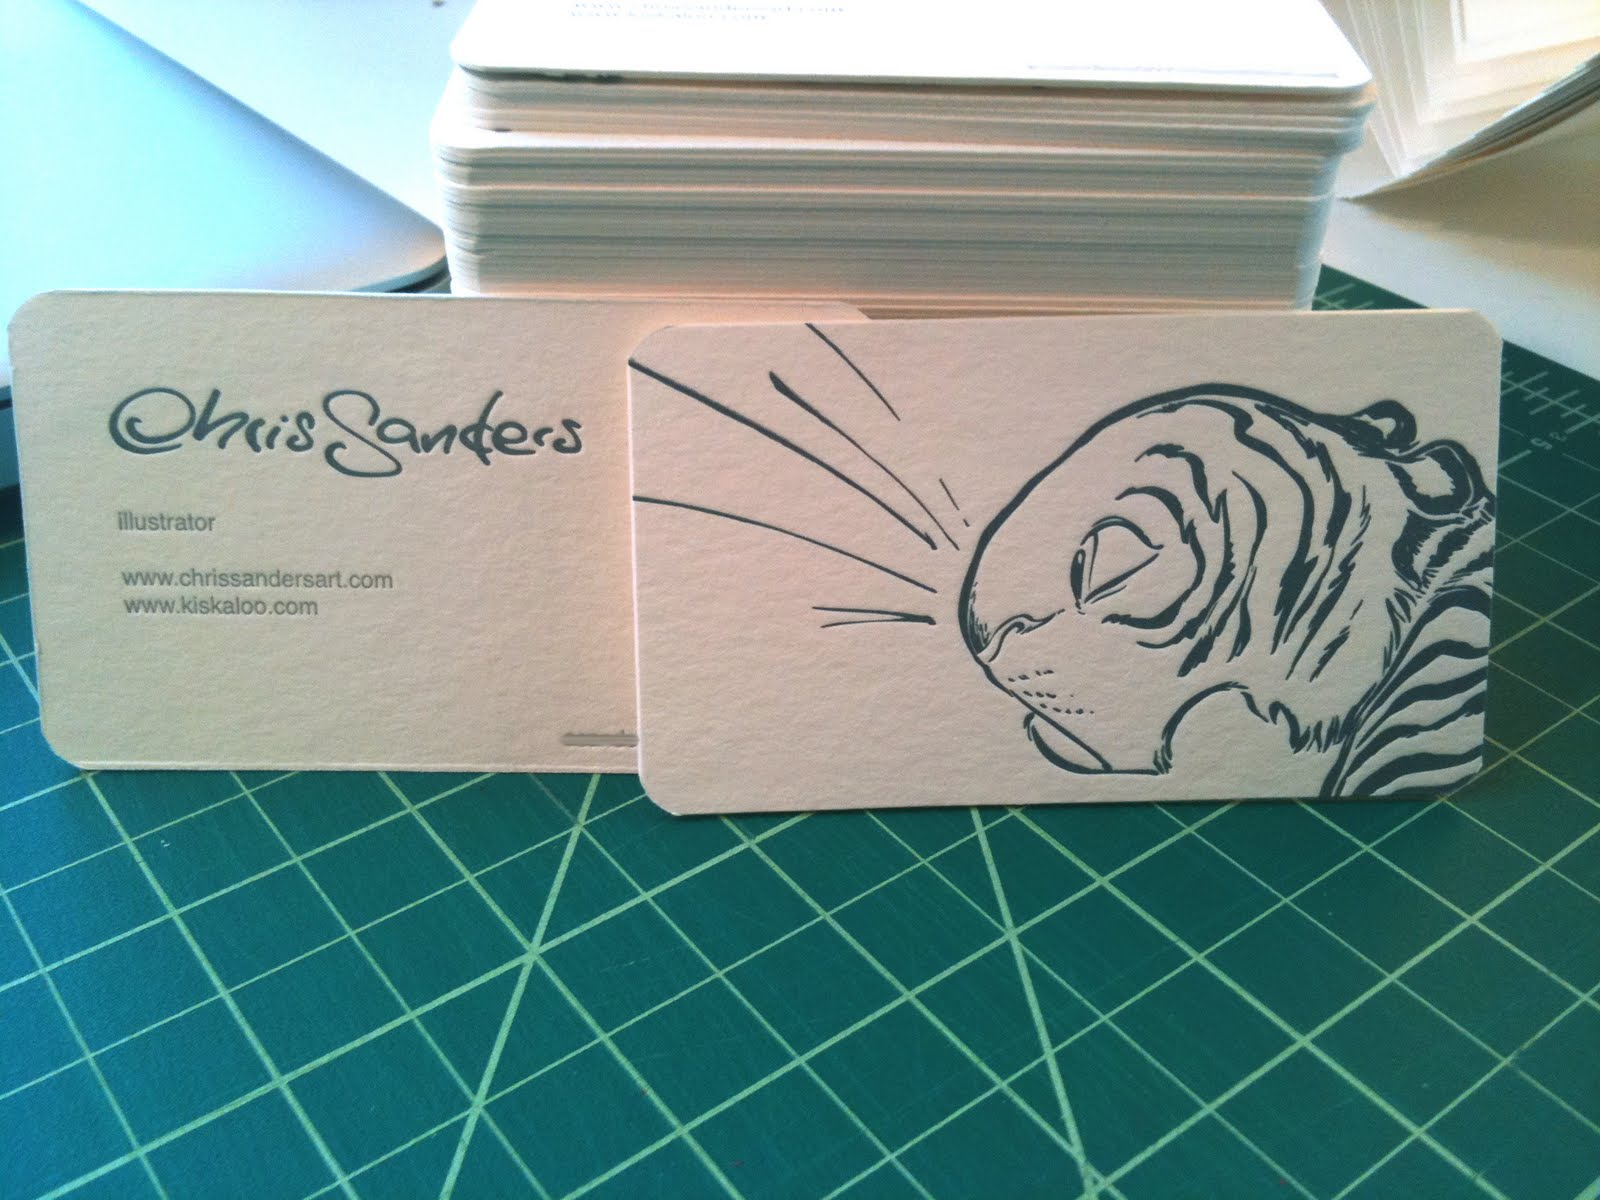 mandy sechrist s blog A Chris Sanders business card